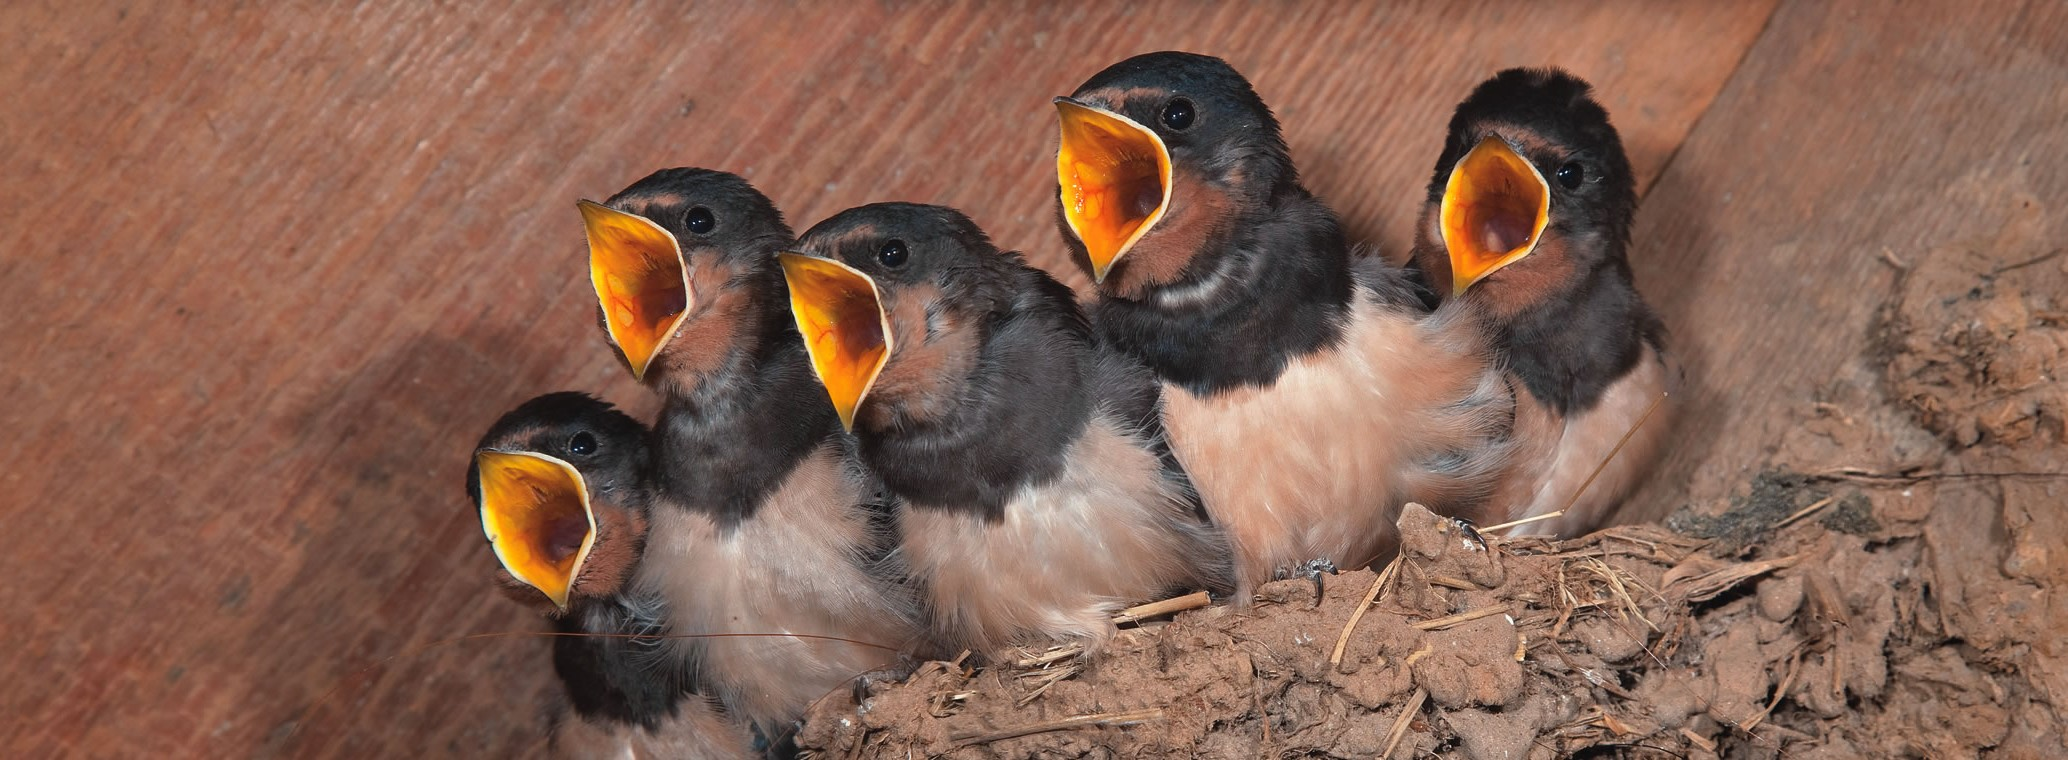 attracting swallows to nest sites in outbuildings